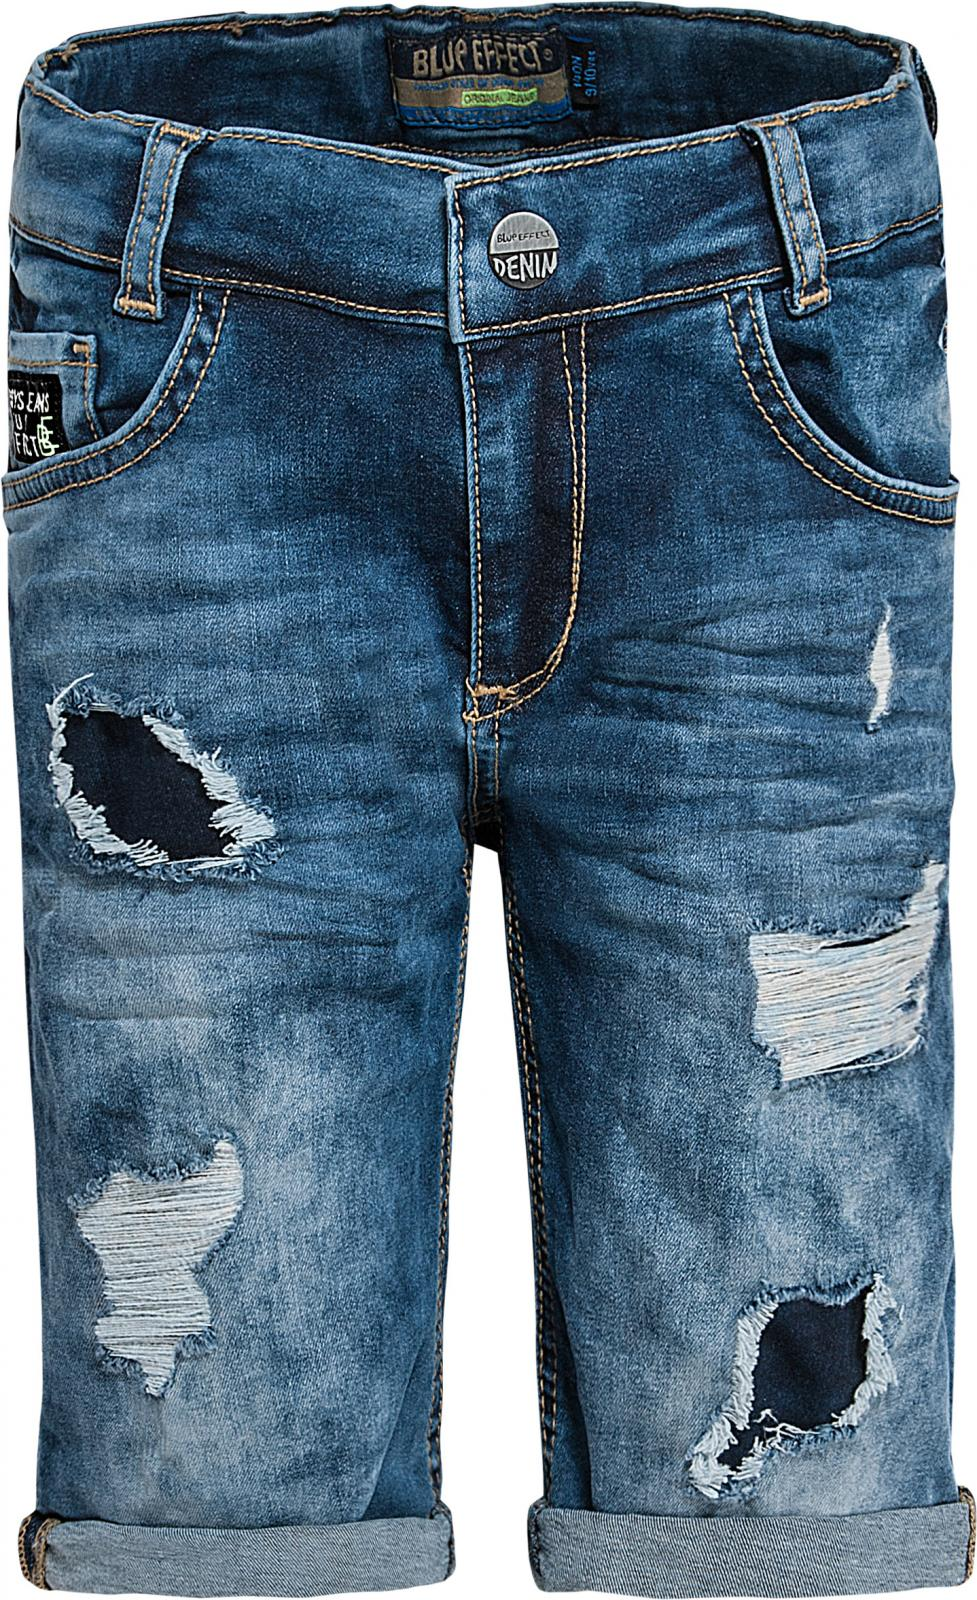 4e9100924bb9 Vorschau  Derbe Jeans Bermuda mit Destroyed Stellen unterlegt in Medium Blue  von BLUE EFFECT 4730 ...